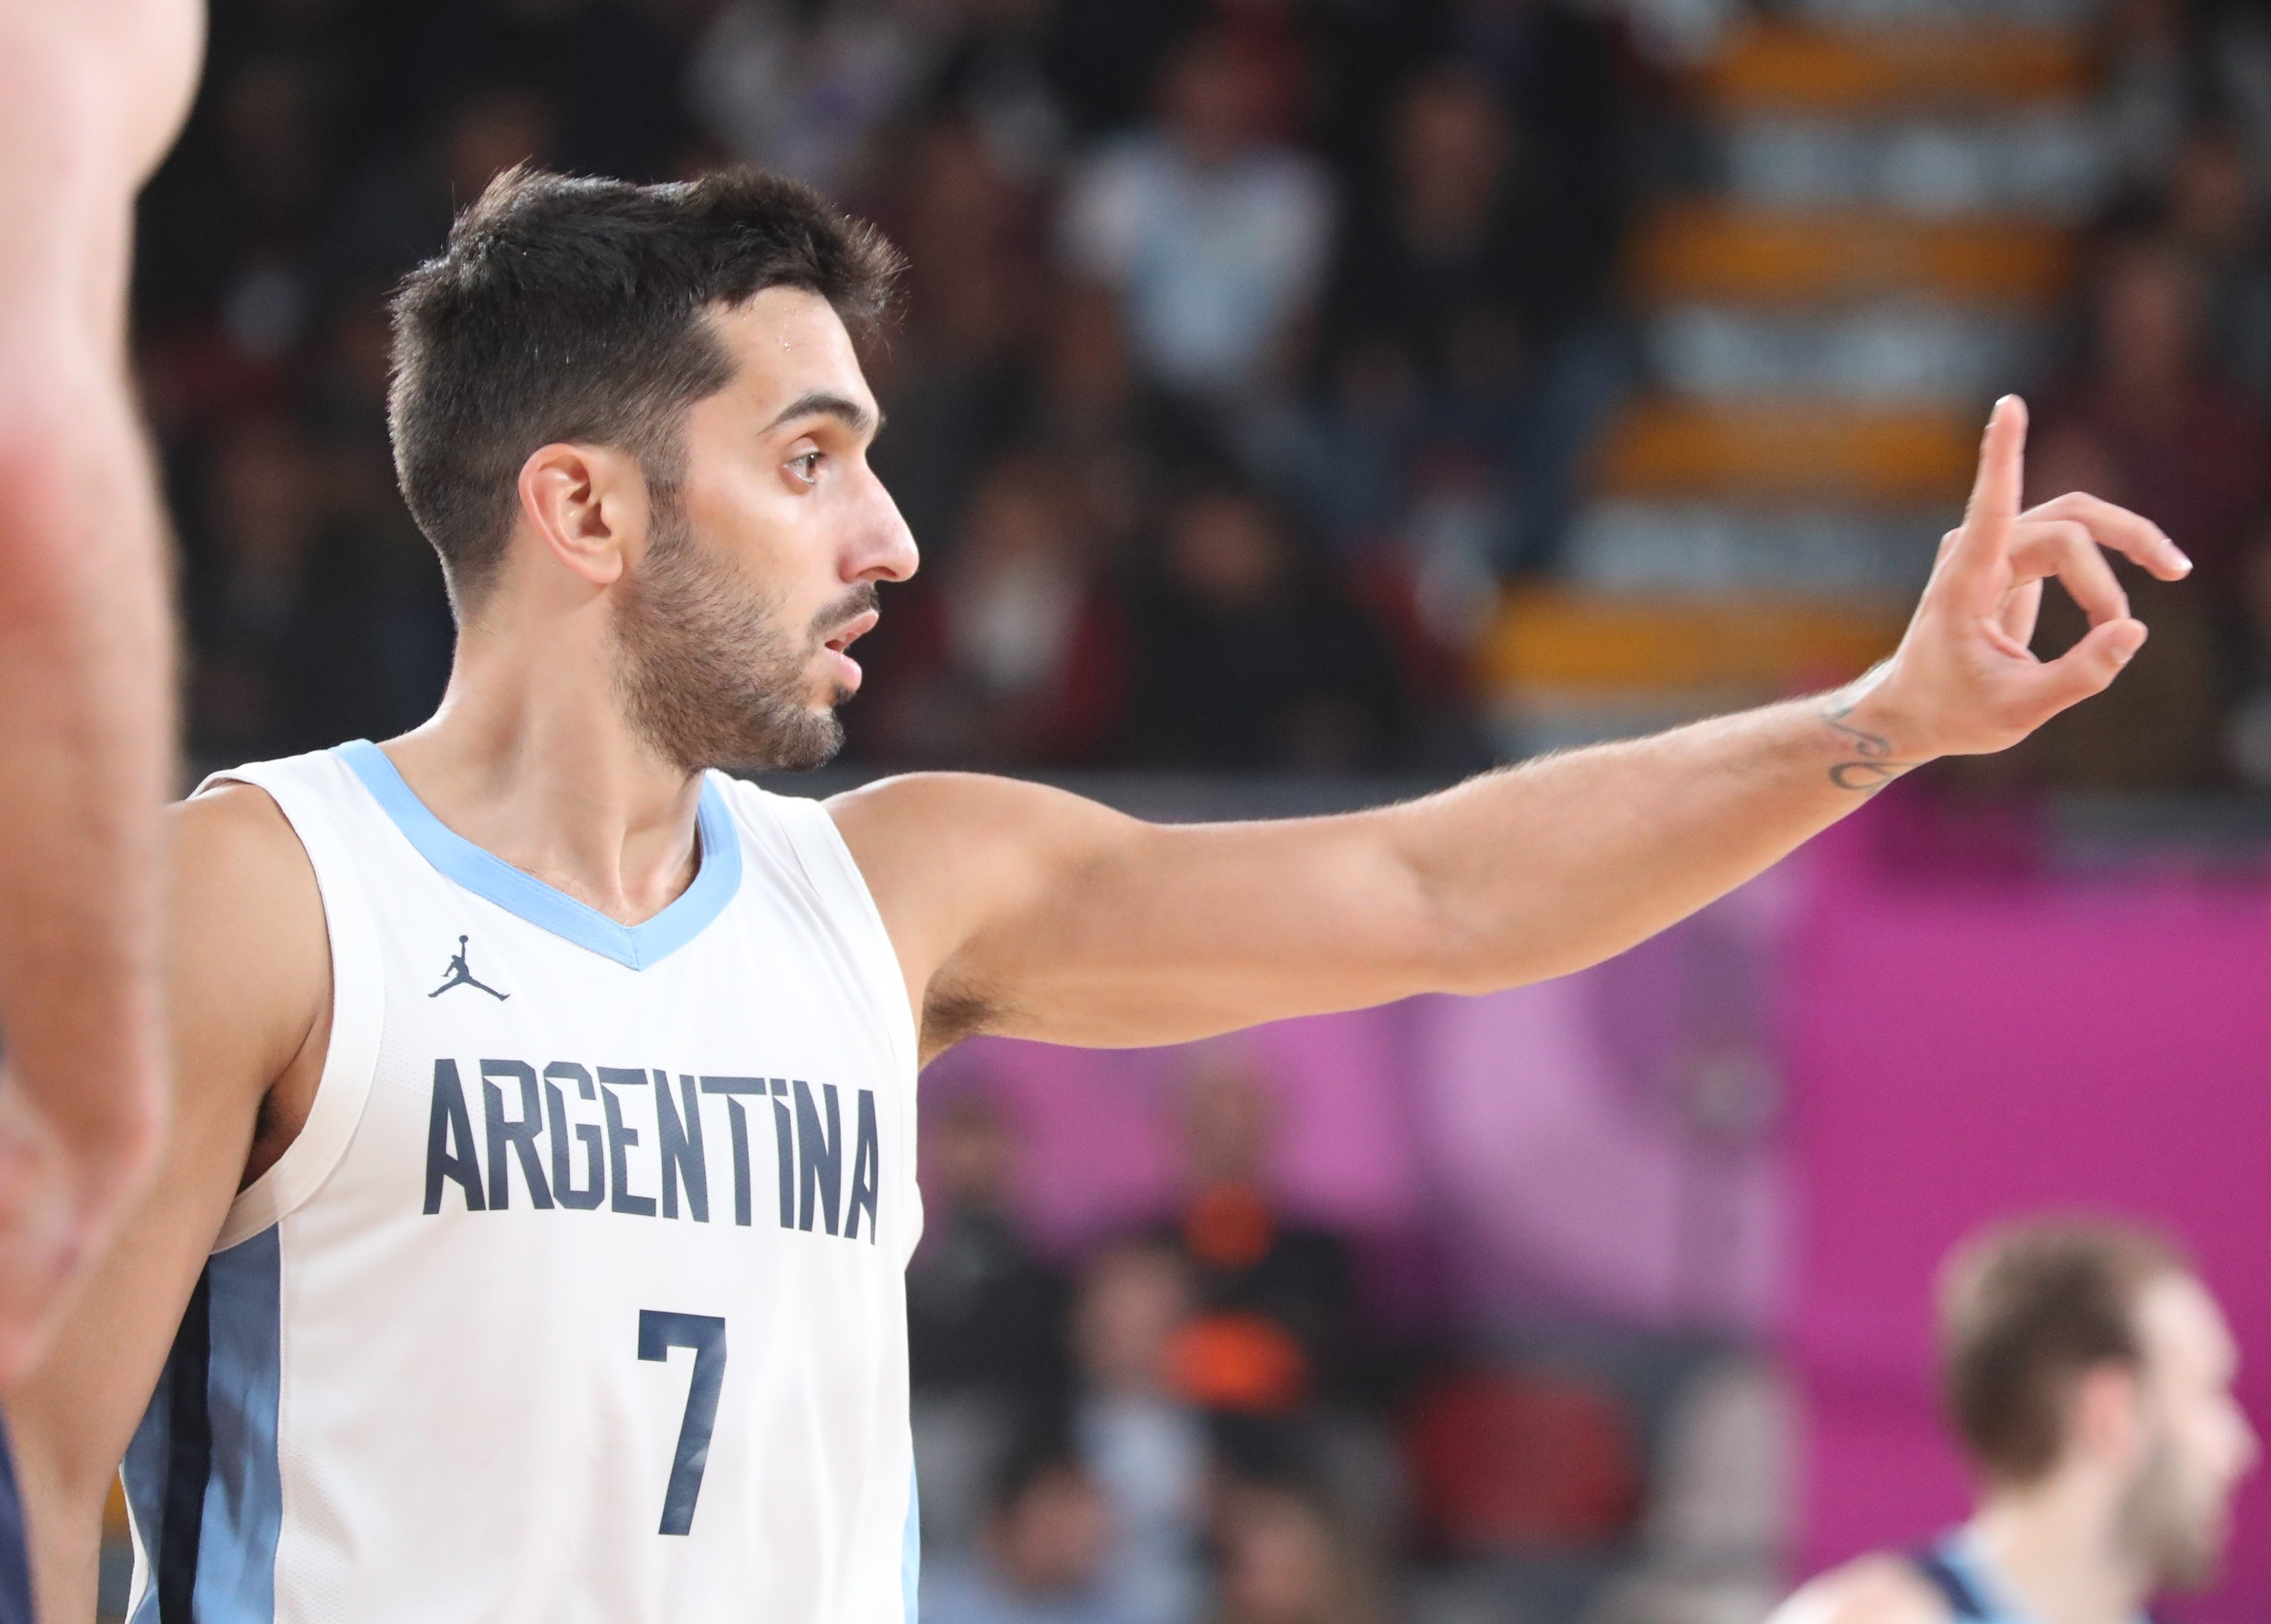 Basketball - XVIII Pan American Games - Lima 2019 - Basketball -  Men Preliminaries Pool -Argentina vs Uruguay - Coliseo Eduardo Dibos, Lima, Peru - July 31, 2019. Argentina's Facundo Campazzo in action. REUTERS/Sergio Moraes